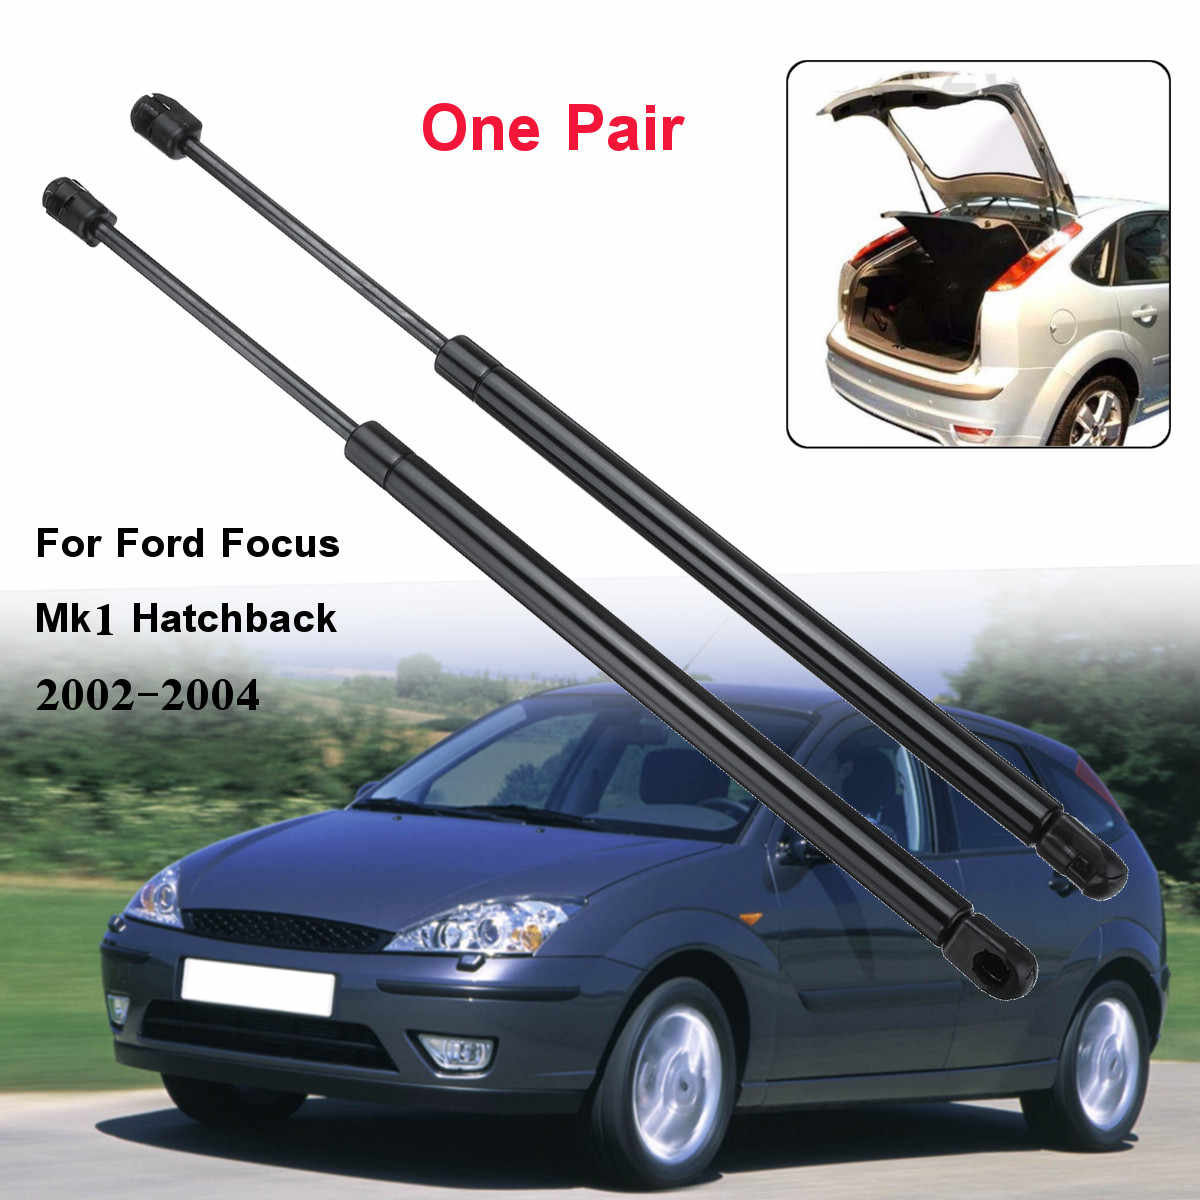 2pcs Car Rear Tailgate Boot Gas Struts Support For Ford for Focus Mk1 Hatchback 1998 1999 2000 2001 2002 2003 2004